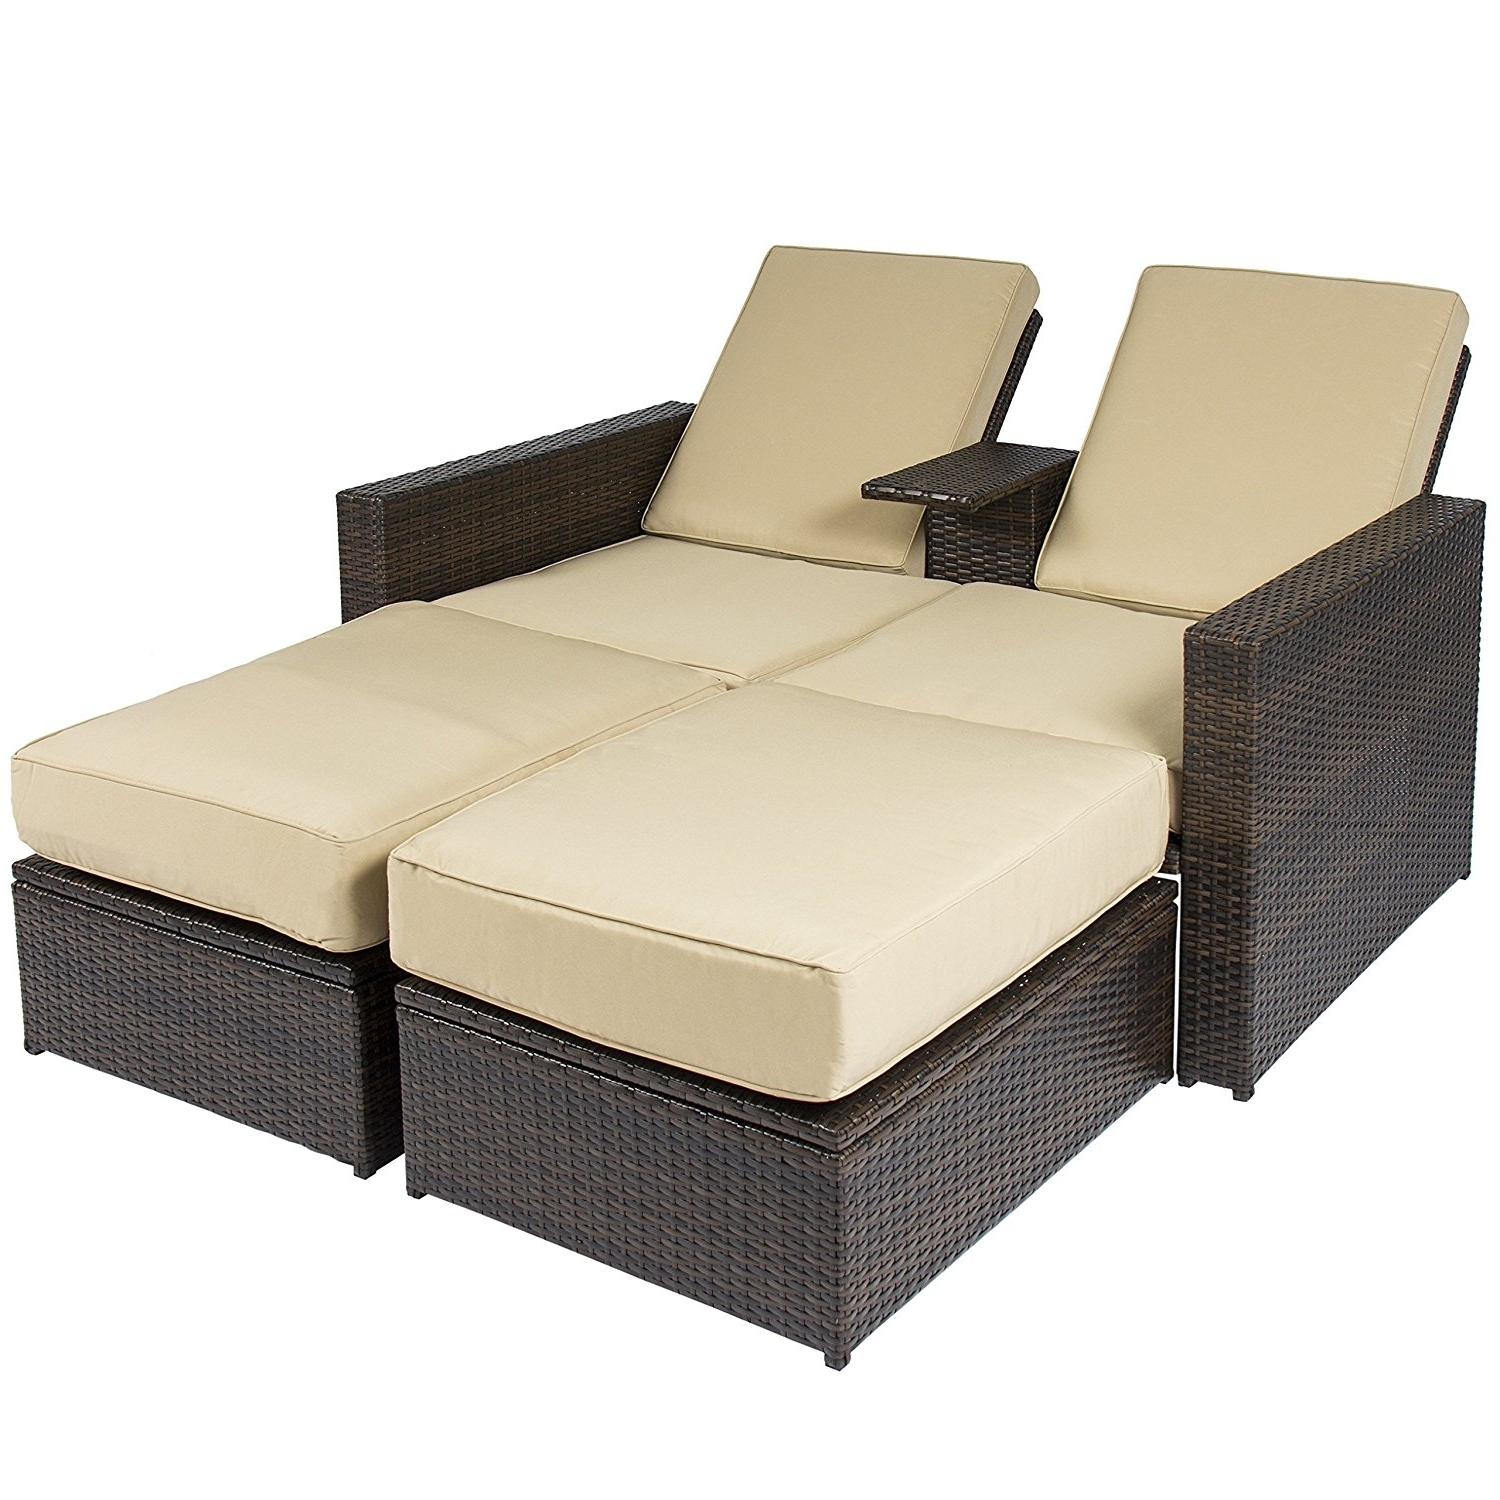 Amazon : Best Choice Products Outdoor 3Pc Rattan Wicker Patio Throughout 2018 Double Chaise Lounge Chairs (View 2 of 15)